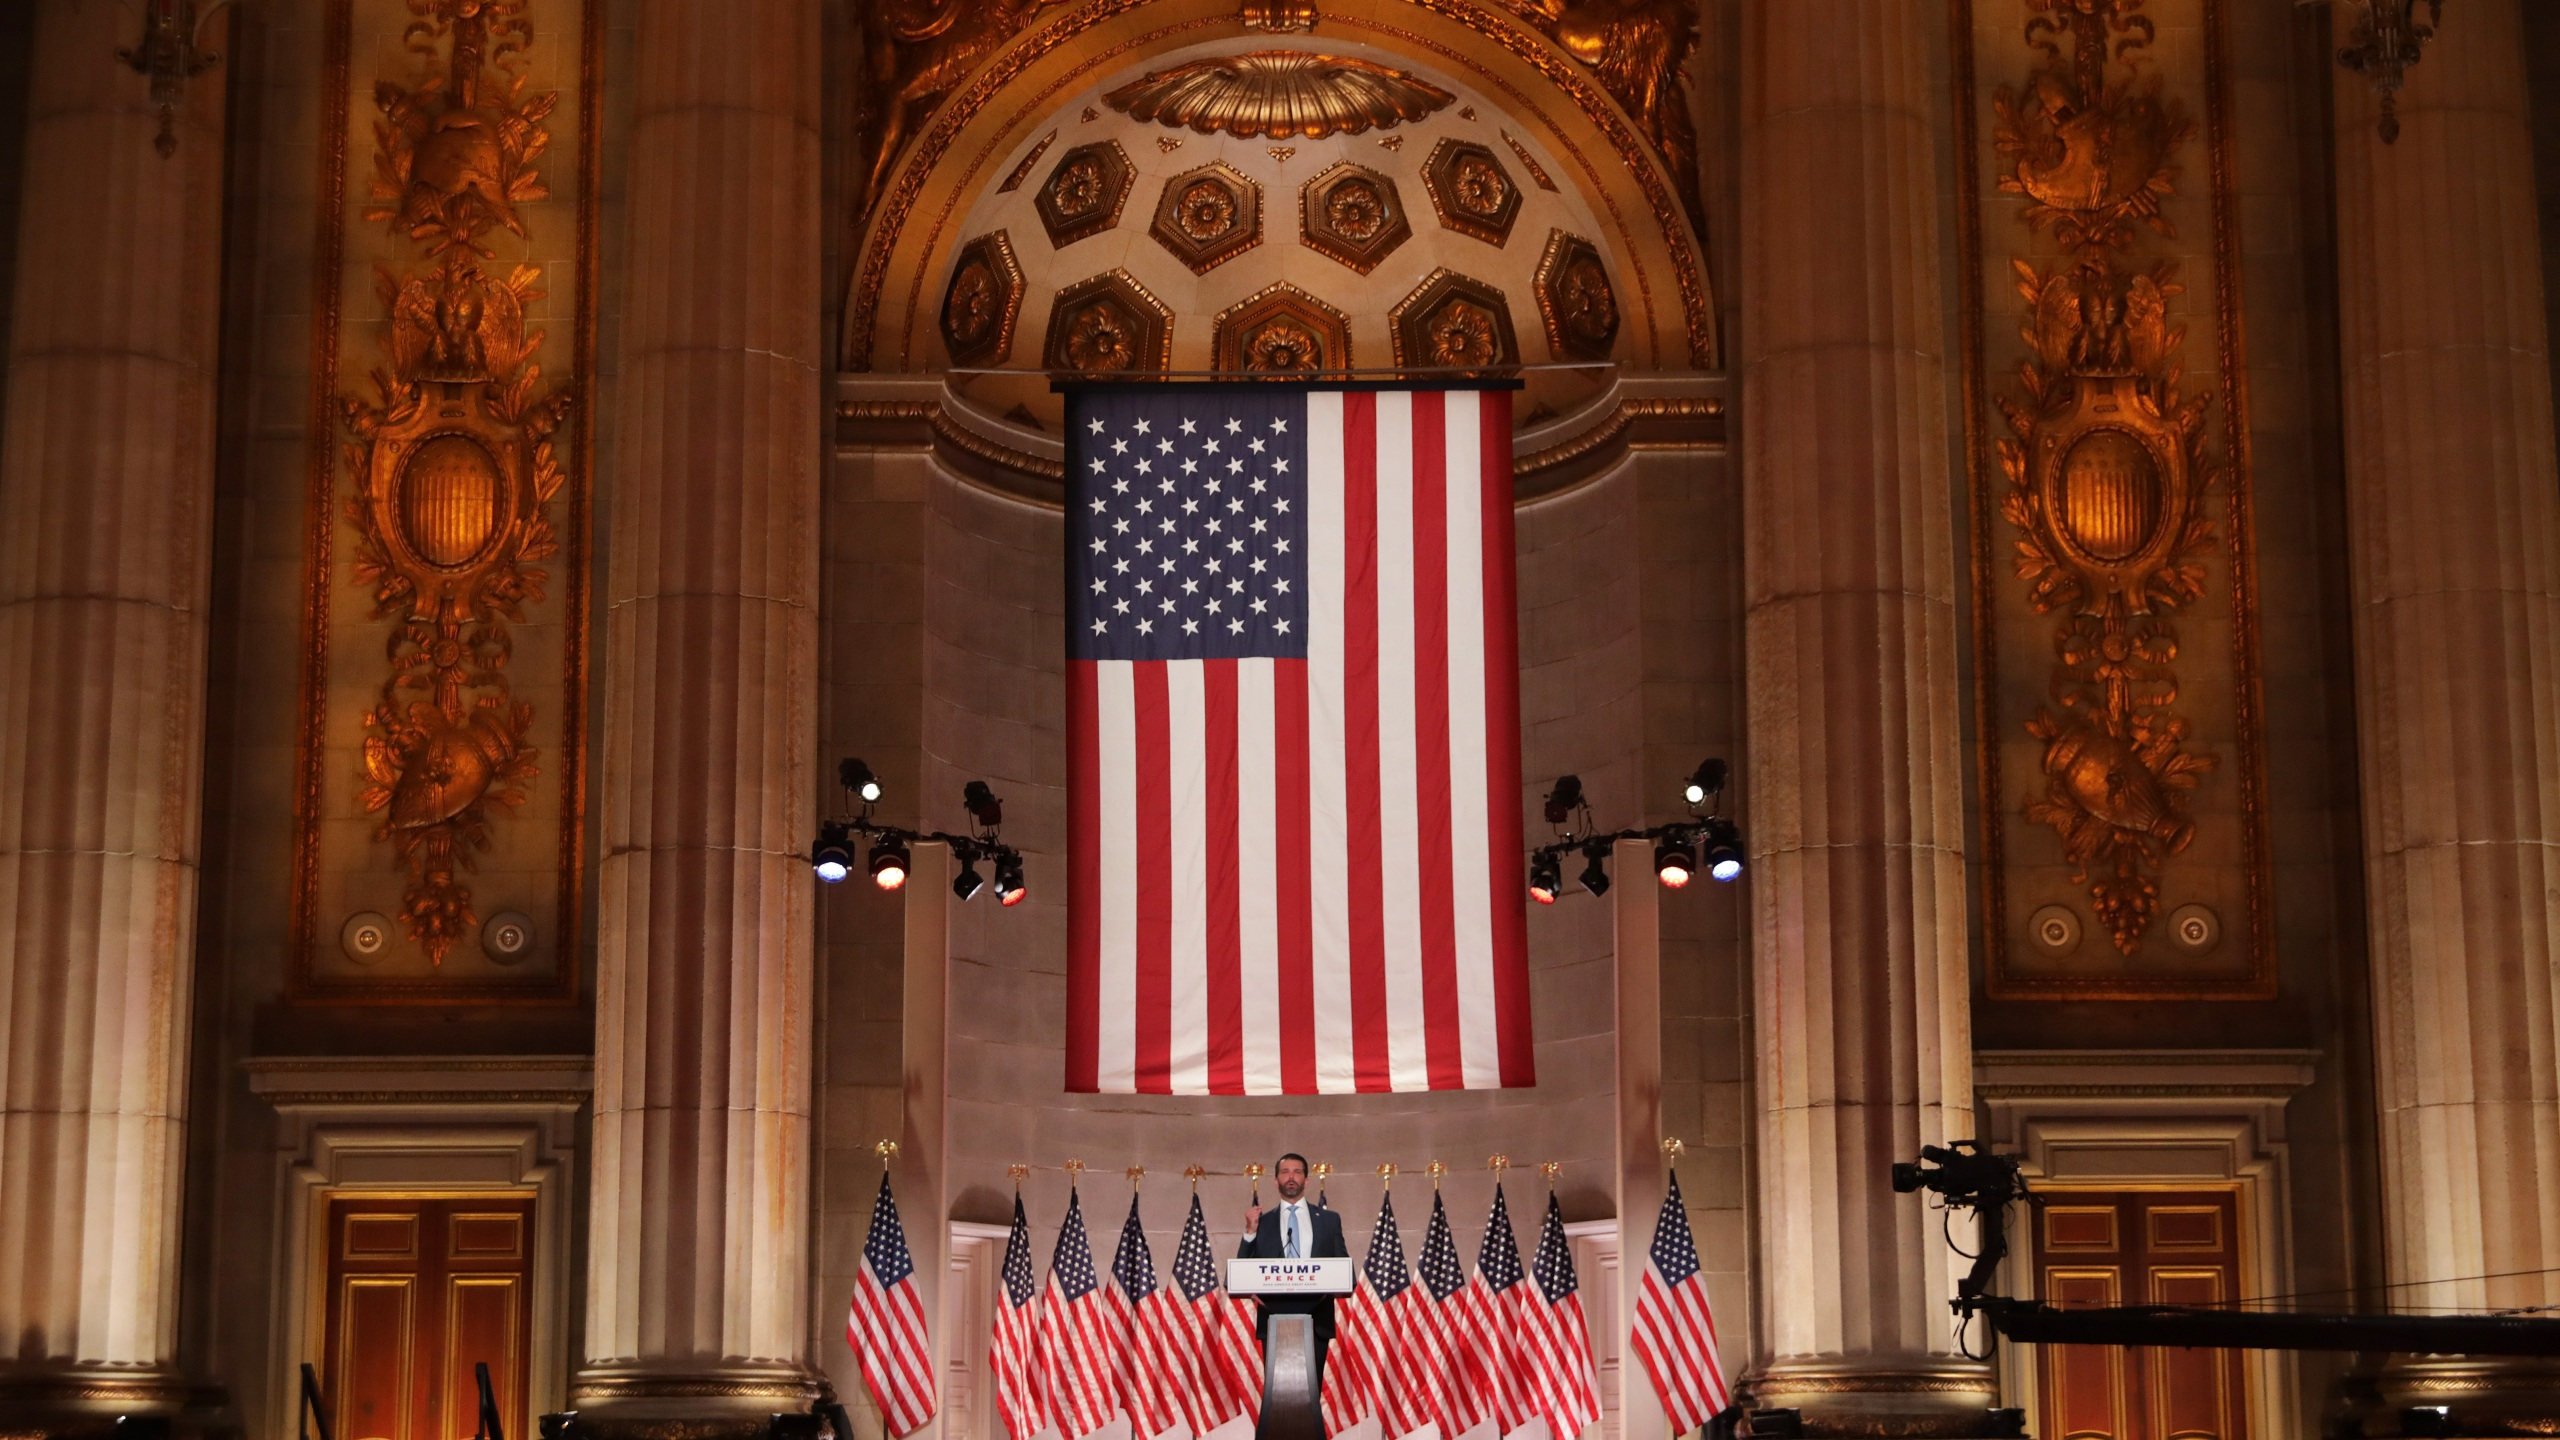 Donald Trump Jr. pre-records his address to the Republican National Convention at the Mellon Auditorium in Washington, D.C. on Aug. 24, 2020. (Chip Somodevilla/Getty Images)